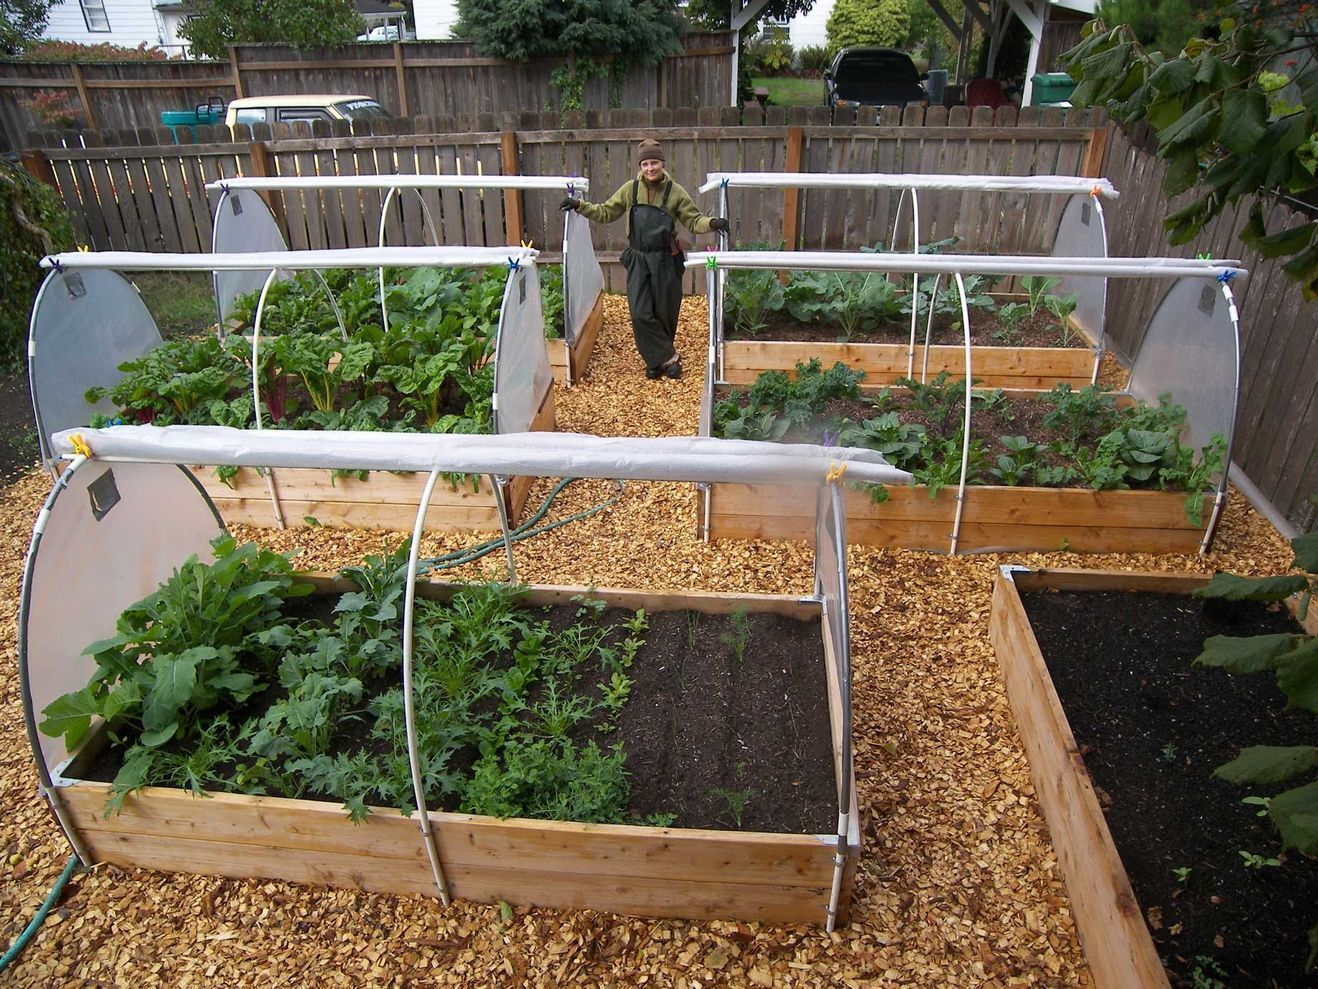 Affordable backyard vegetable garden designs ideas 16 | organic ...